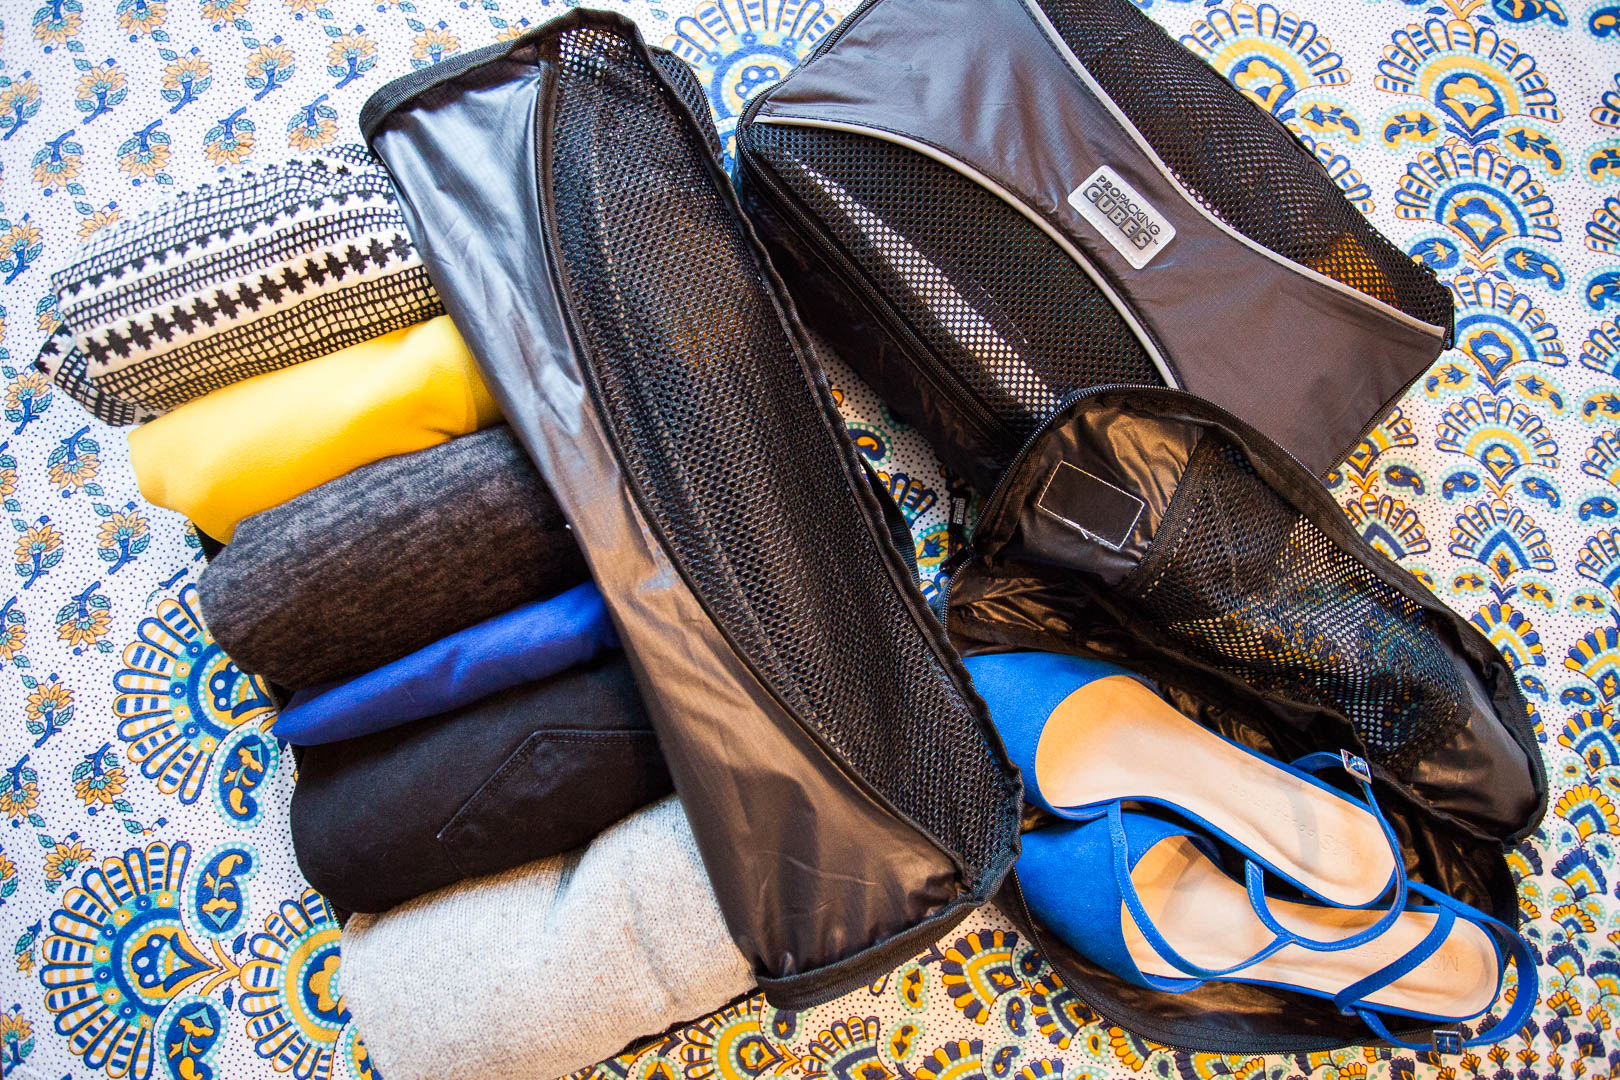 Packing is probably our least favorite thing about travel - but here are 10 packing tips that will help you packing like a pro!